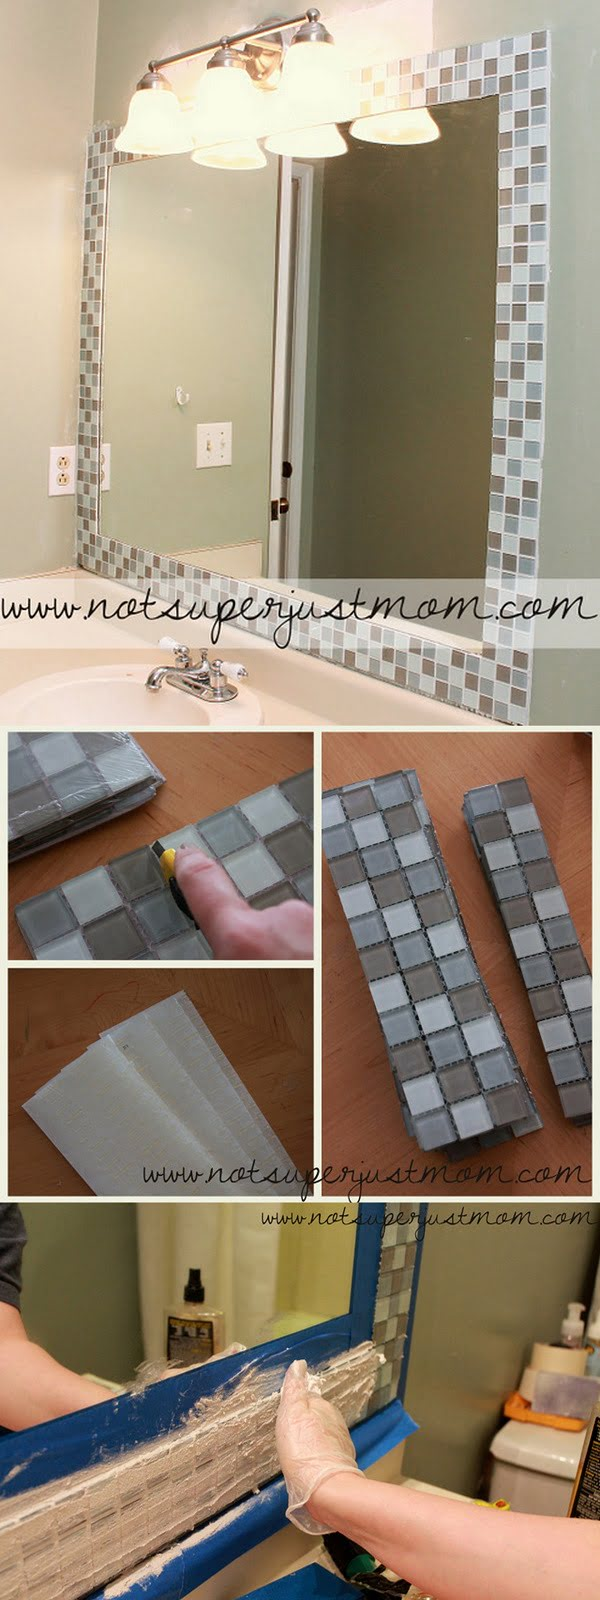 30 Stunning DIY Mosaic Craft Projects for Easy Home Decor - Check out this easy idea on how to make a #DIY mosaic mirror frame for #bathroom #homedecor on a #budget #project